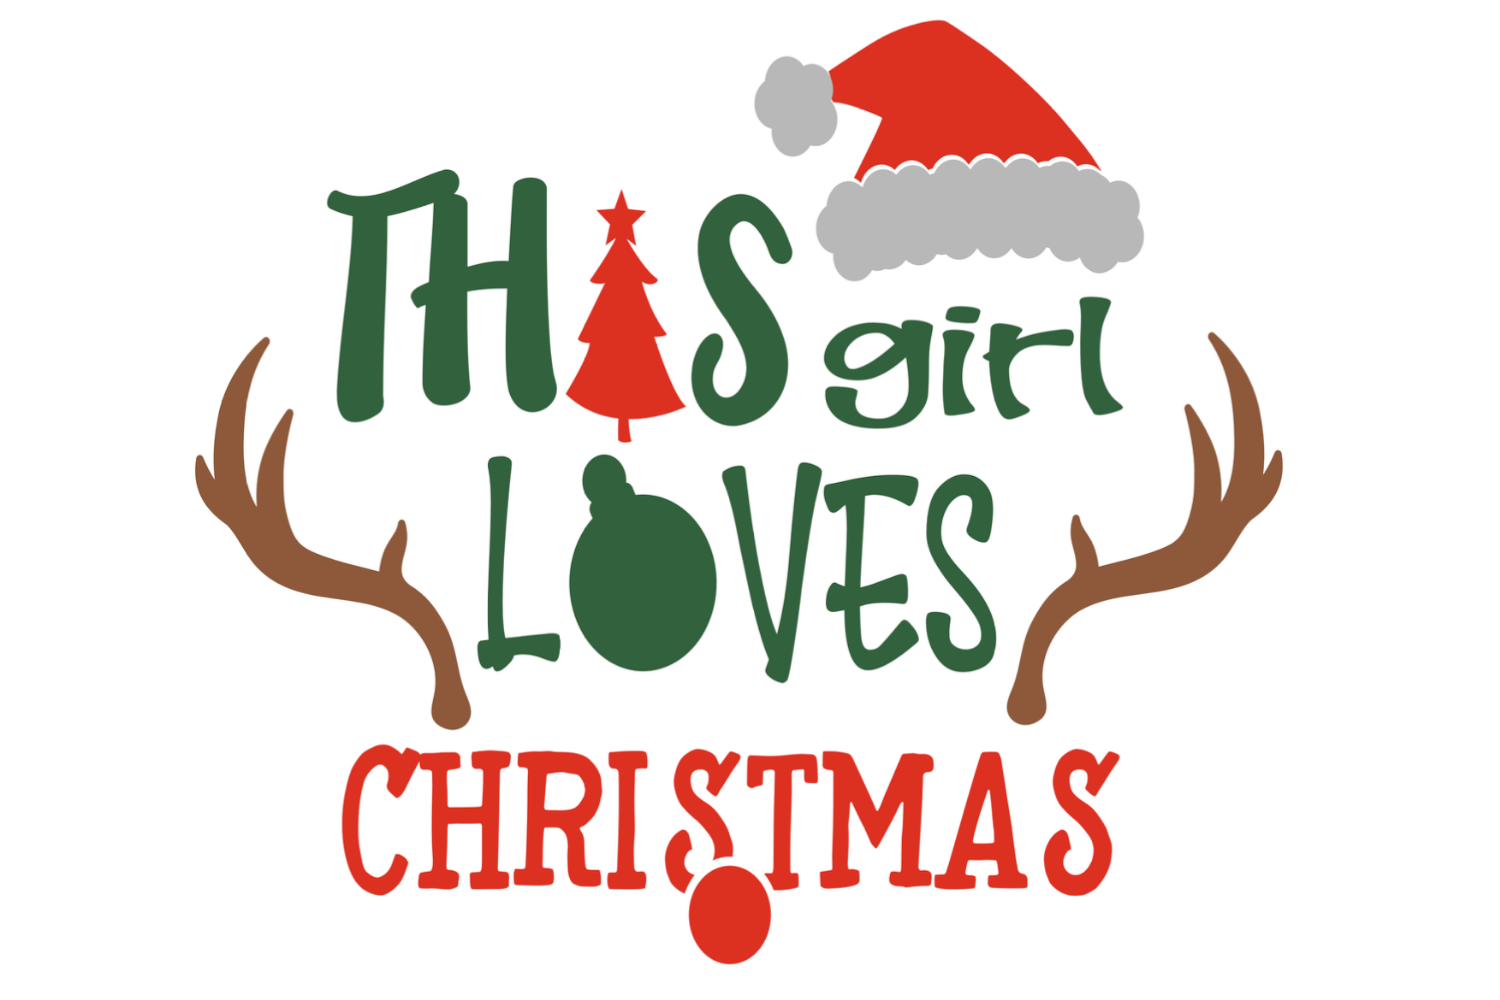 This girl loves Christmas svg Merry Christmas svg Holiday example image 2